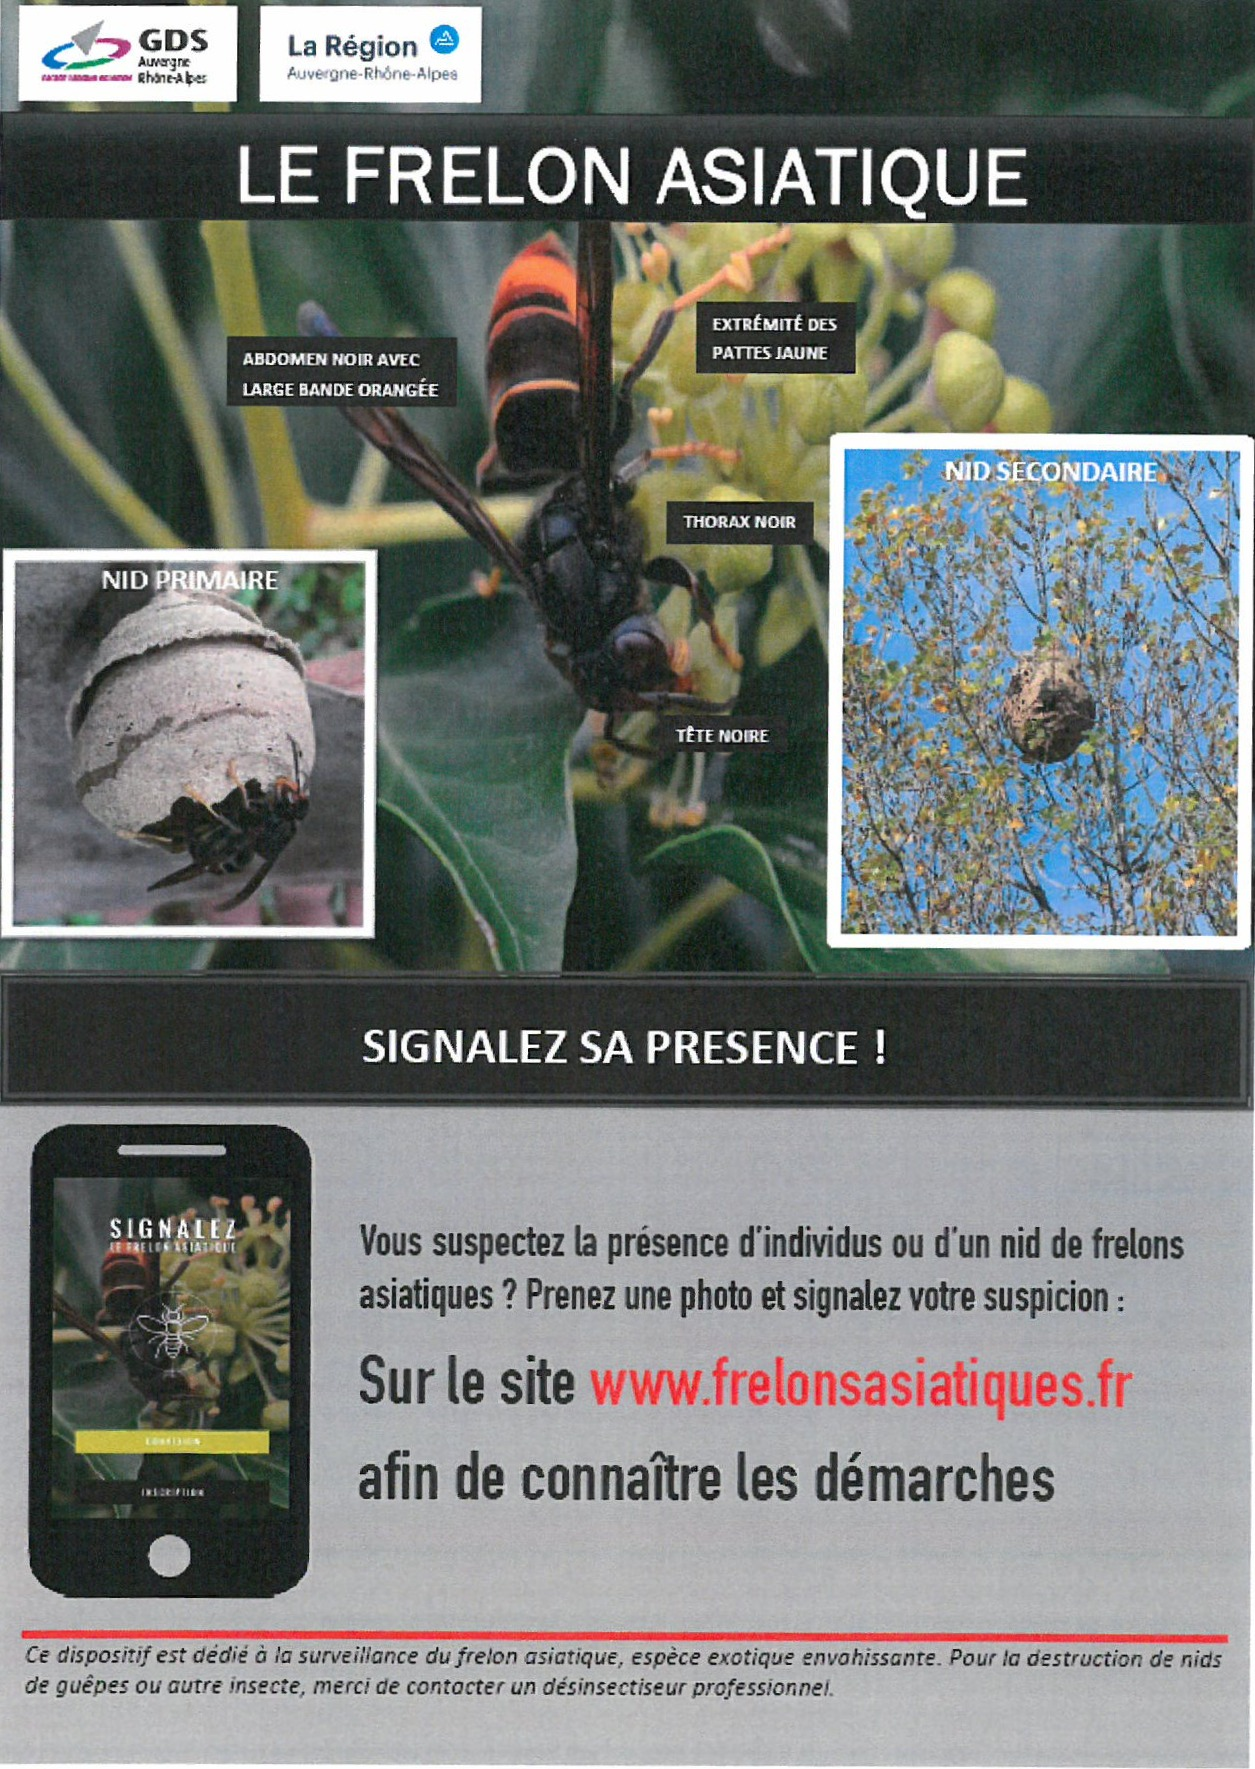 Frelon%20asiatique%20_edited